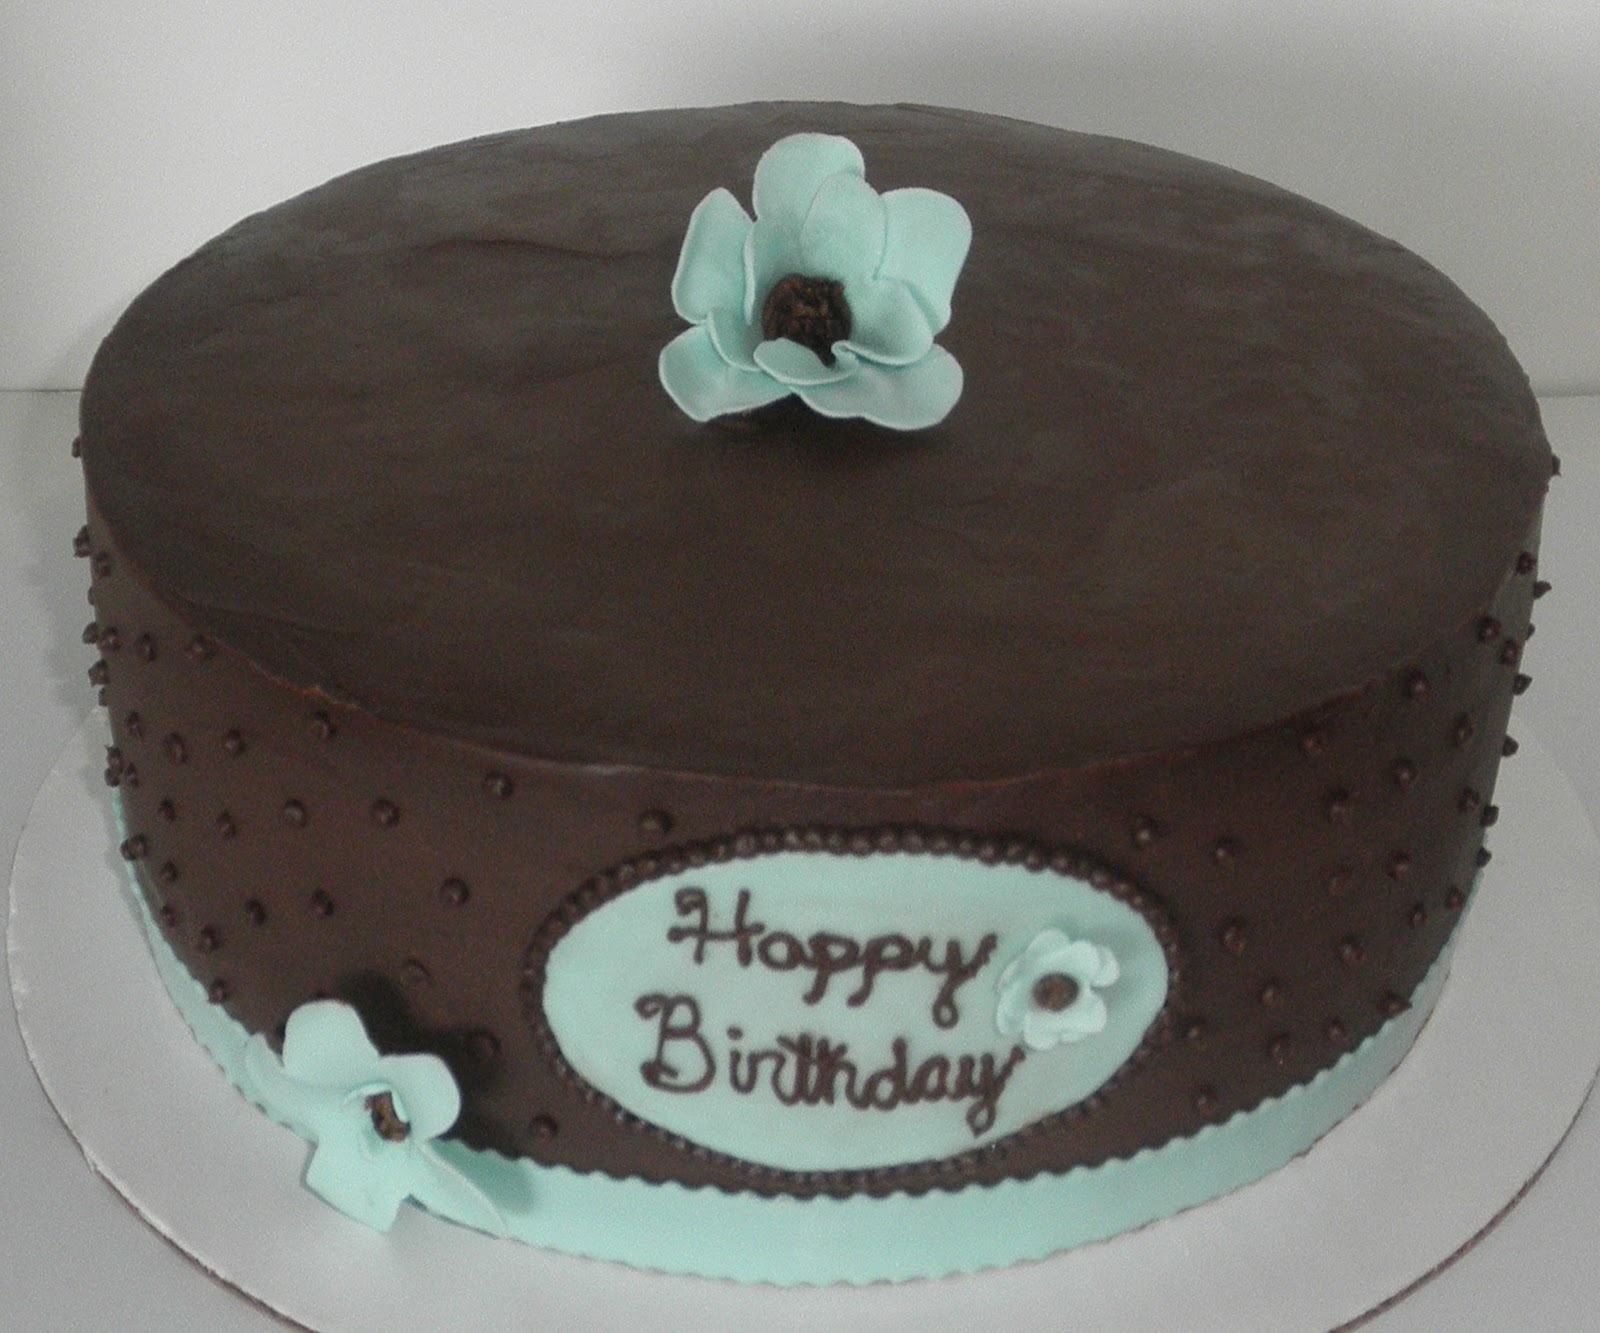 Sweet Ts Cake Design Light Blue Flowers w Brown Centers